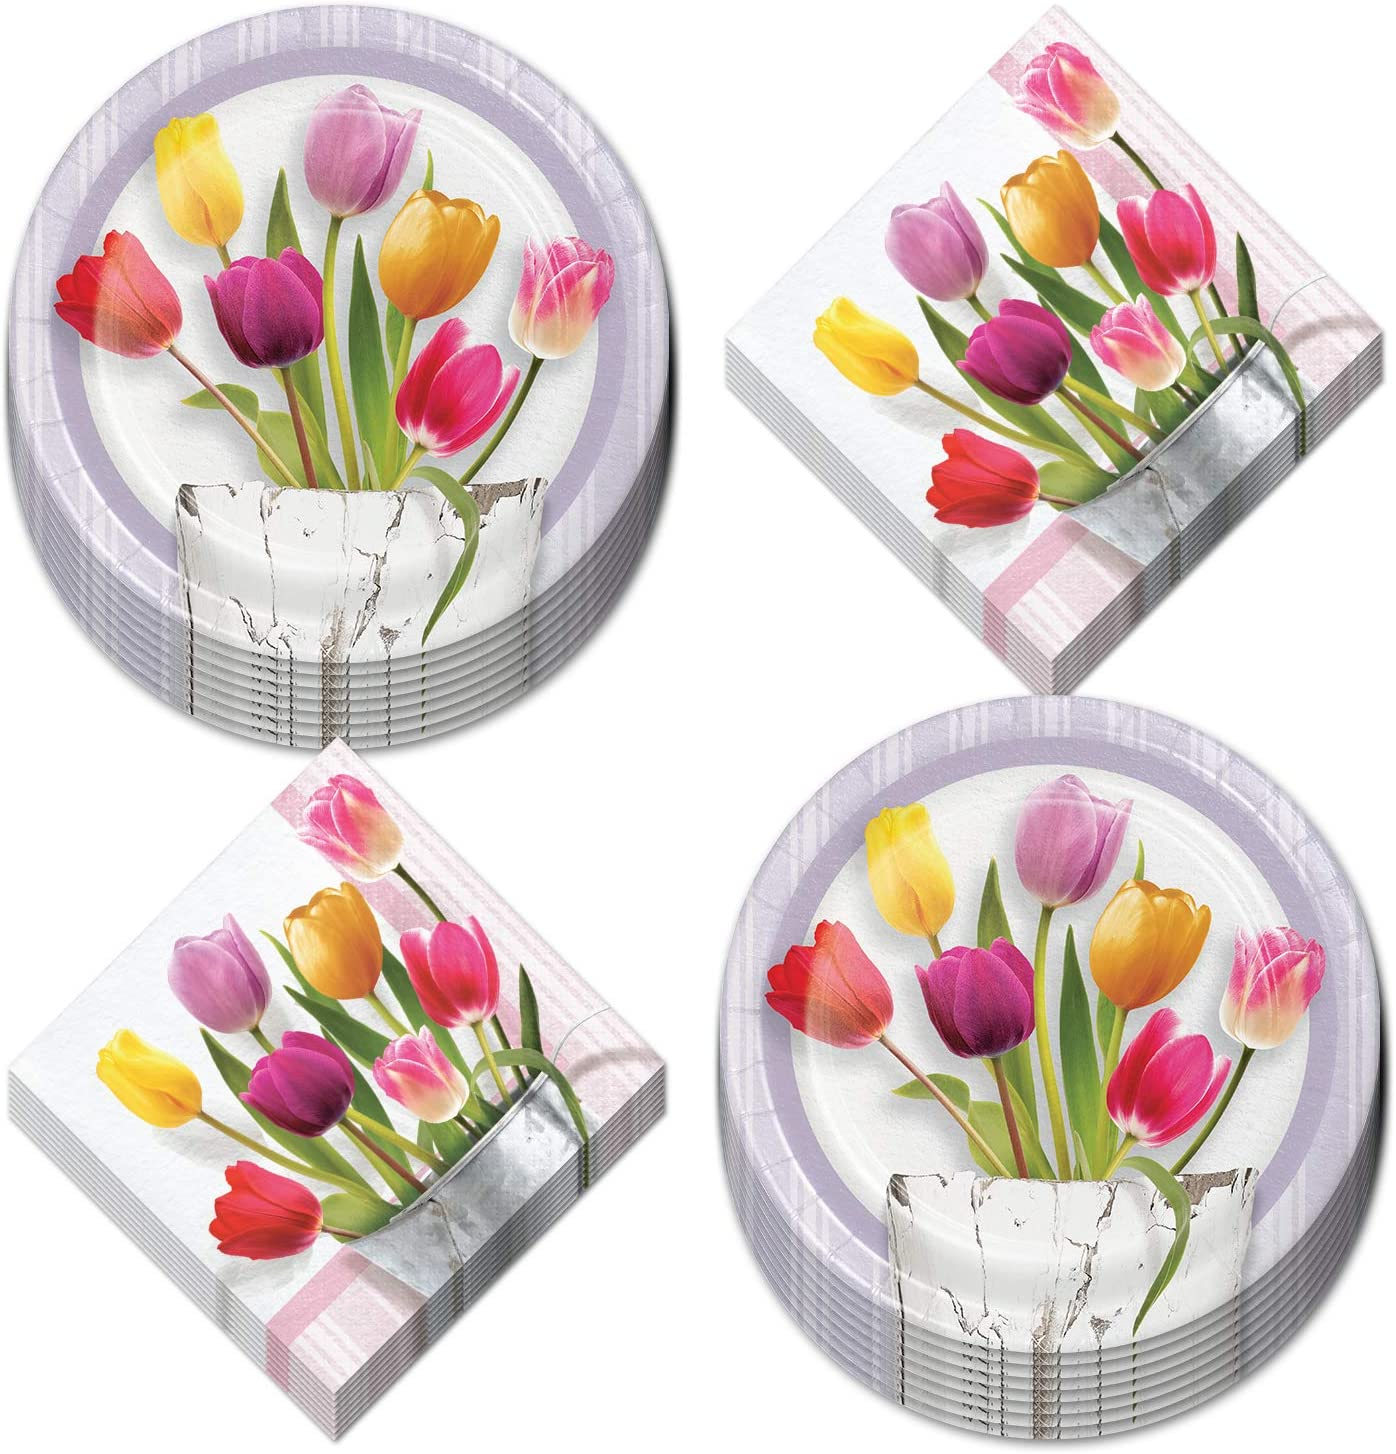 Spring Tulips Watering Can Paper Dessert Plates and Beverage Napkins (Serves 16)